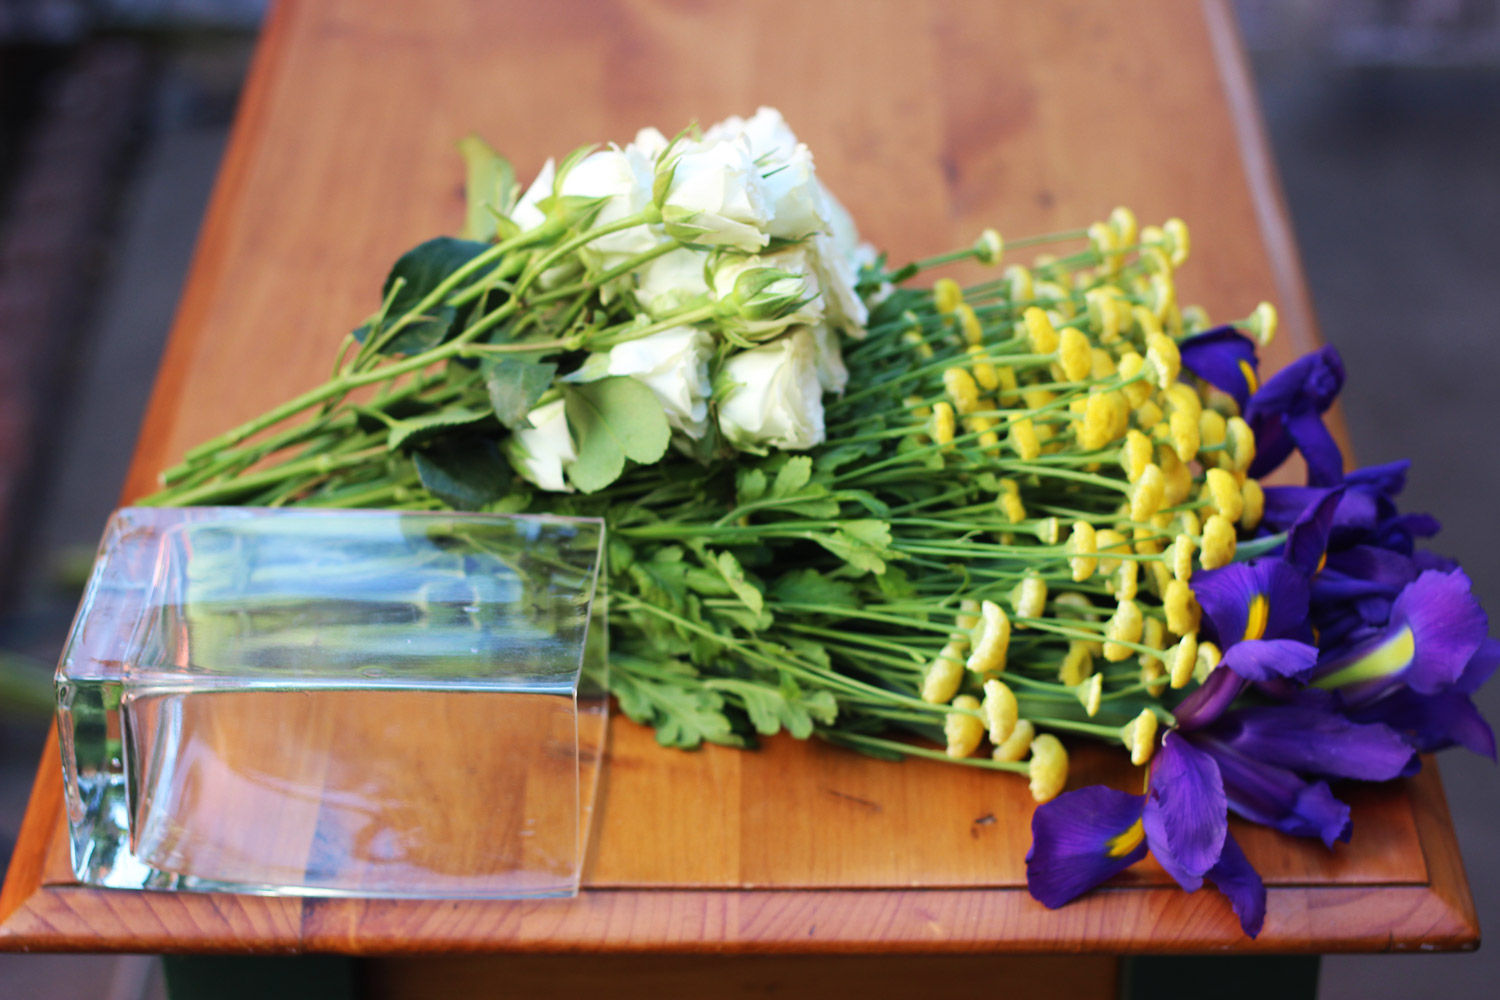 Lay your flowers out how they will stand in the vase and cut the stems.